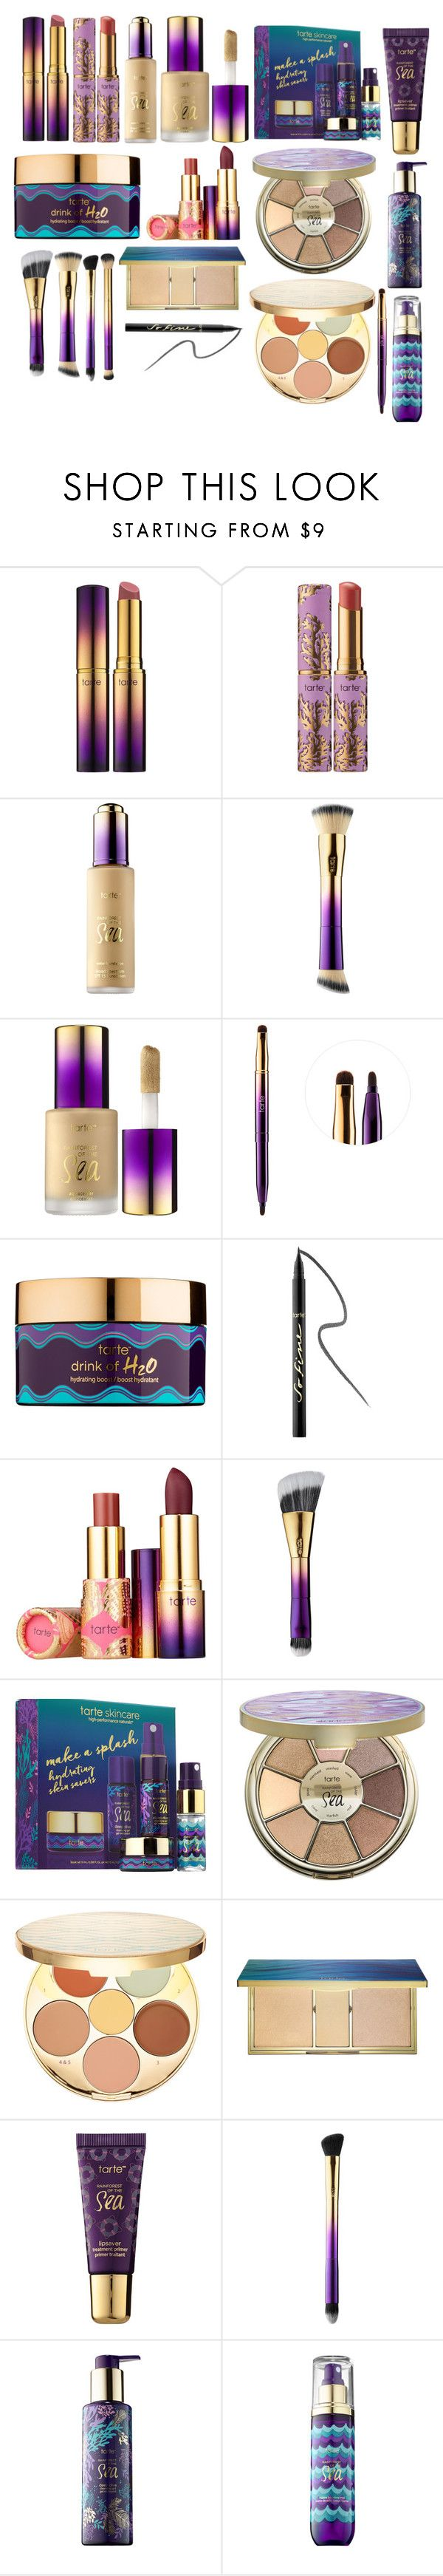 """""""Tarte Rainforest of the Sea Collection"""" by annabankesterbeautyblogger on Polyvore featuring beauty and tarte"""